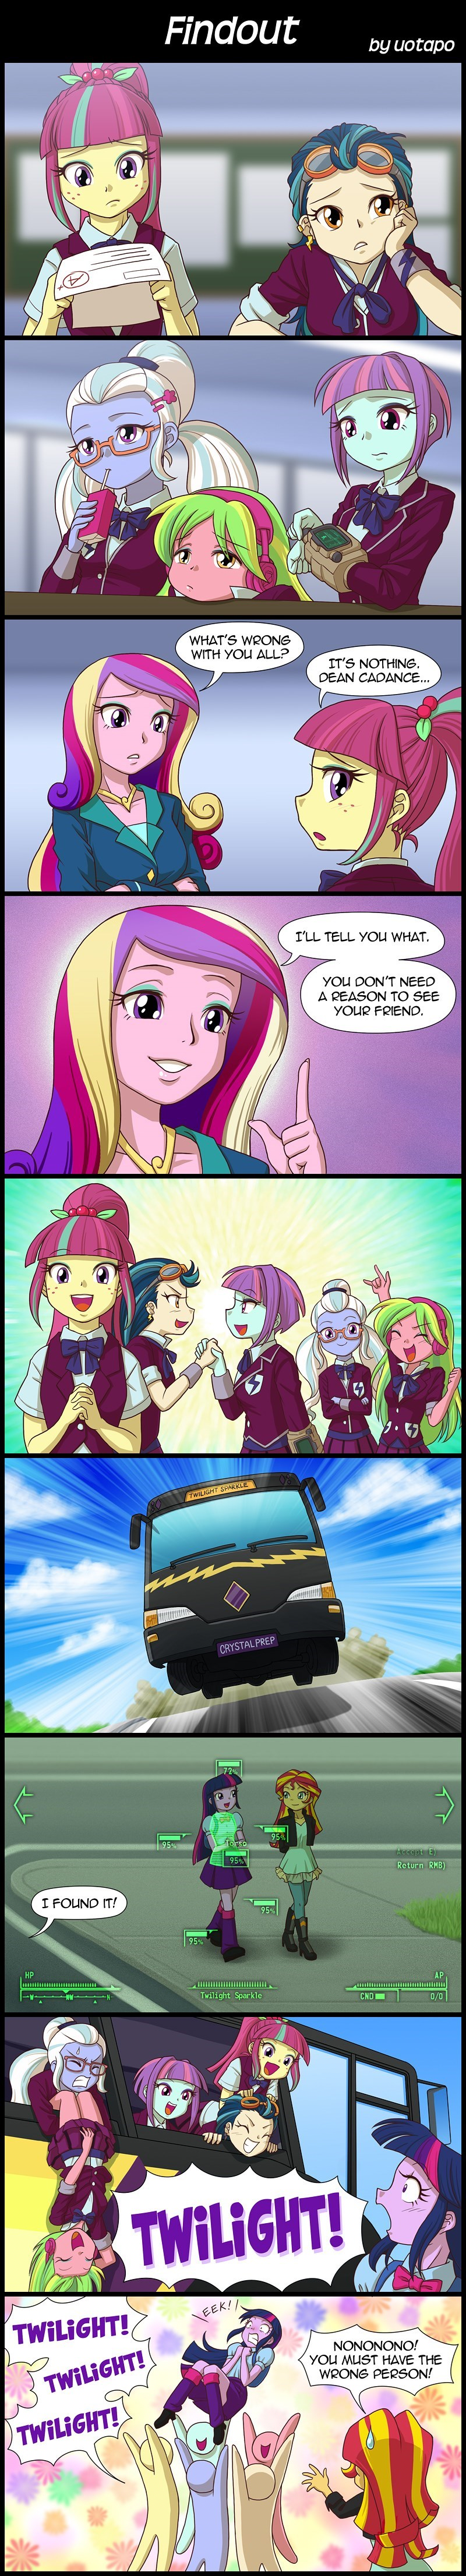 lemon zest sour sweet indigo zap equestria girls sugarcoat fallout twilight sparkle dean cadance sunny flare sunset shimmer friendship games - 8594479360